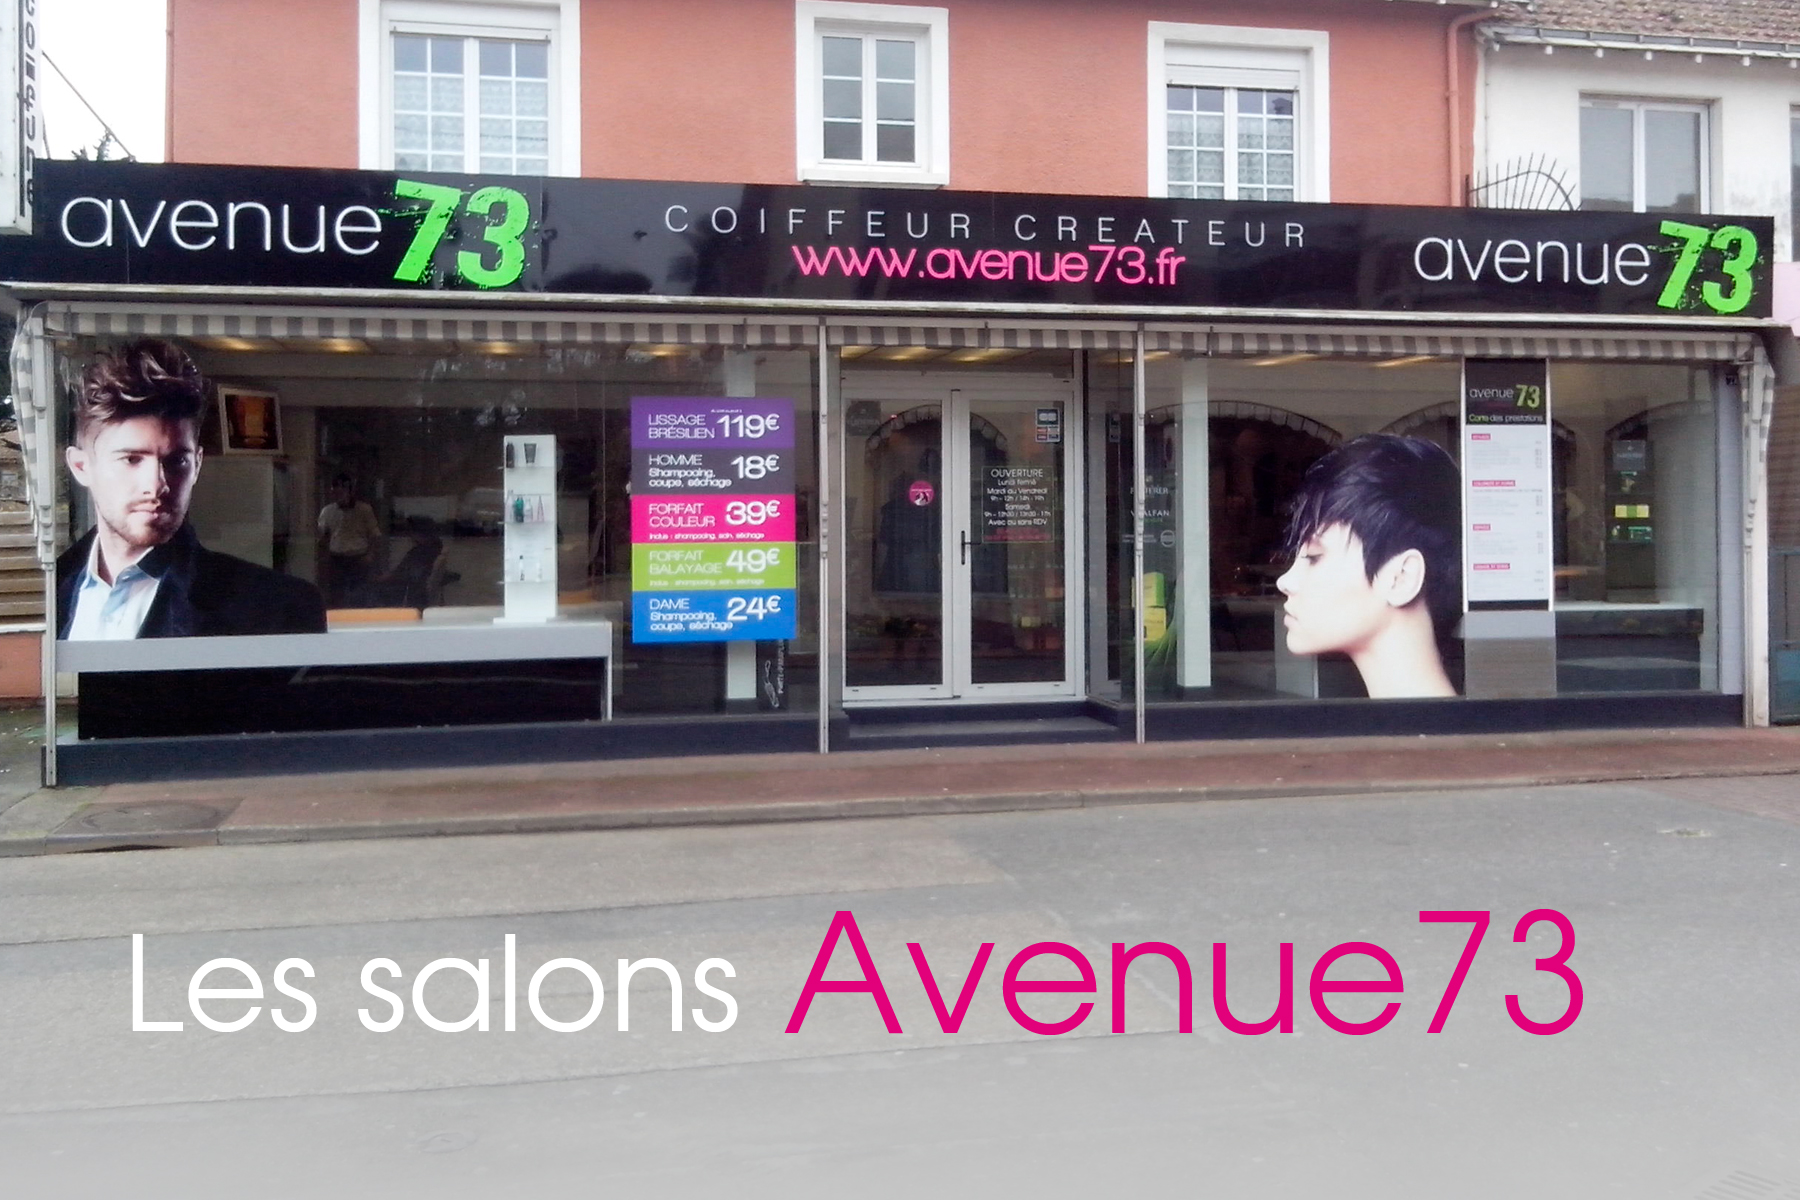 Franchise de salon de coiffure